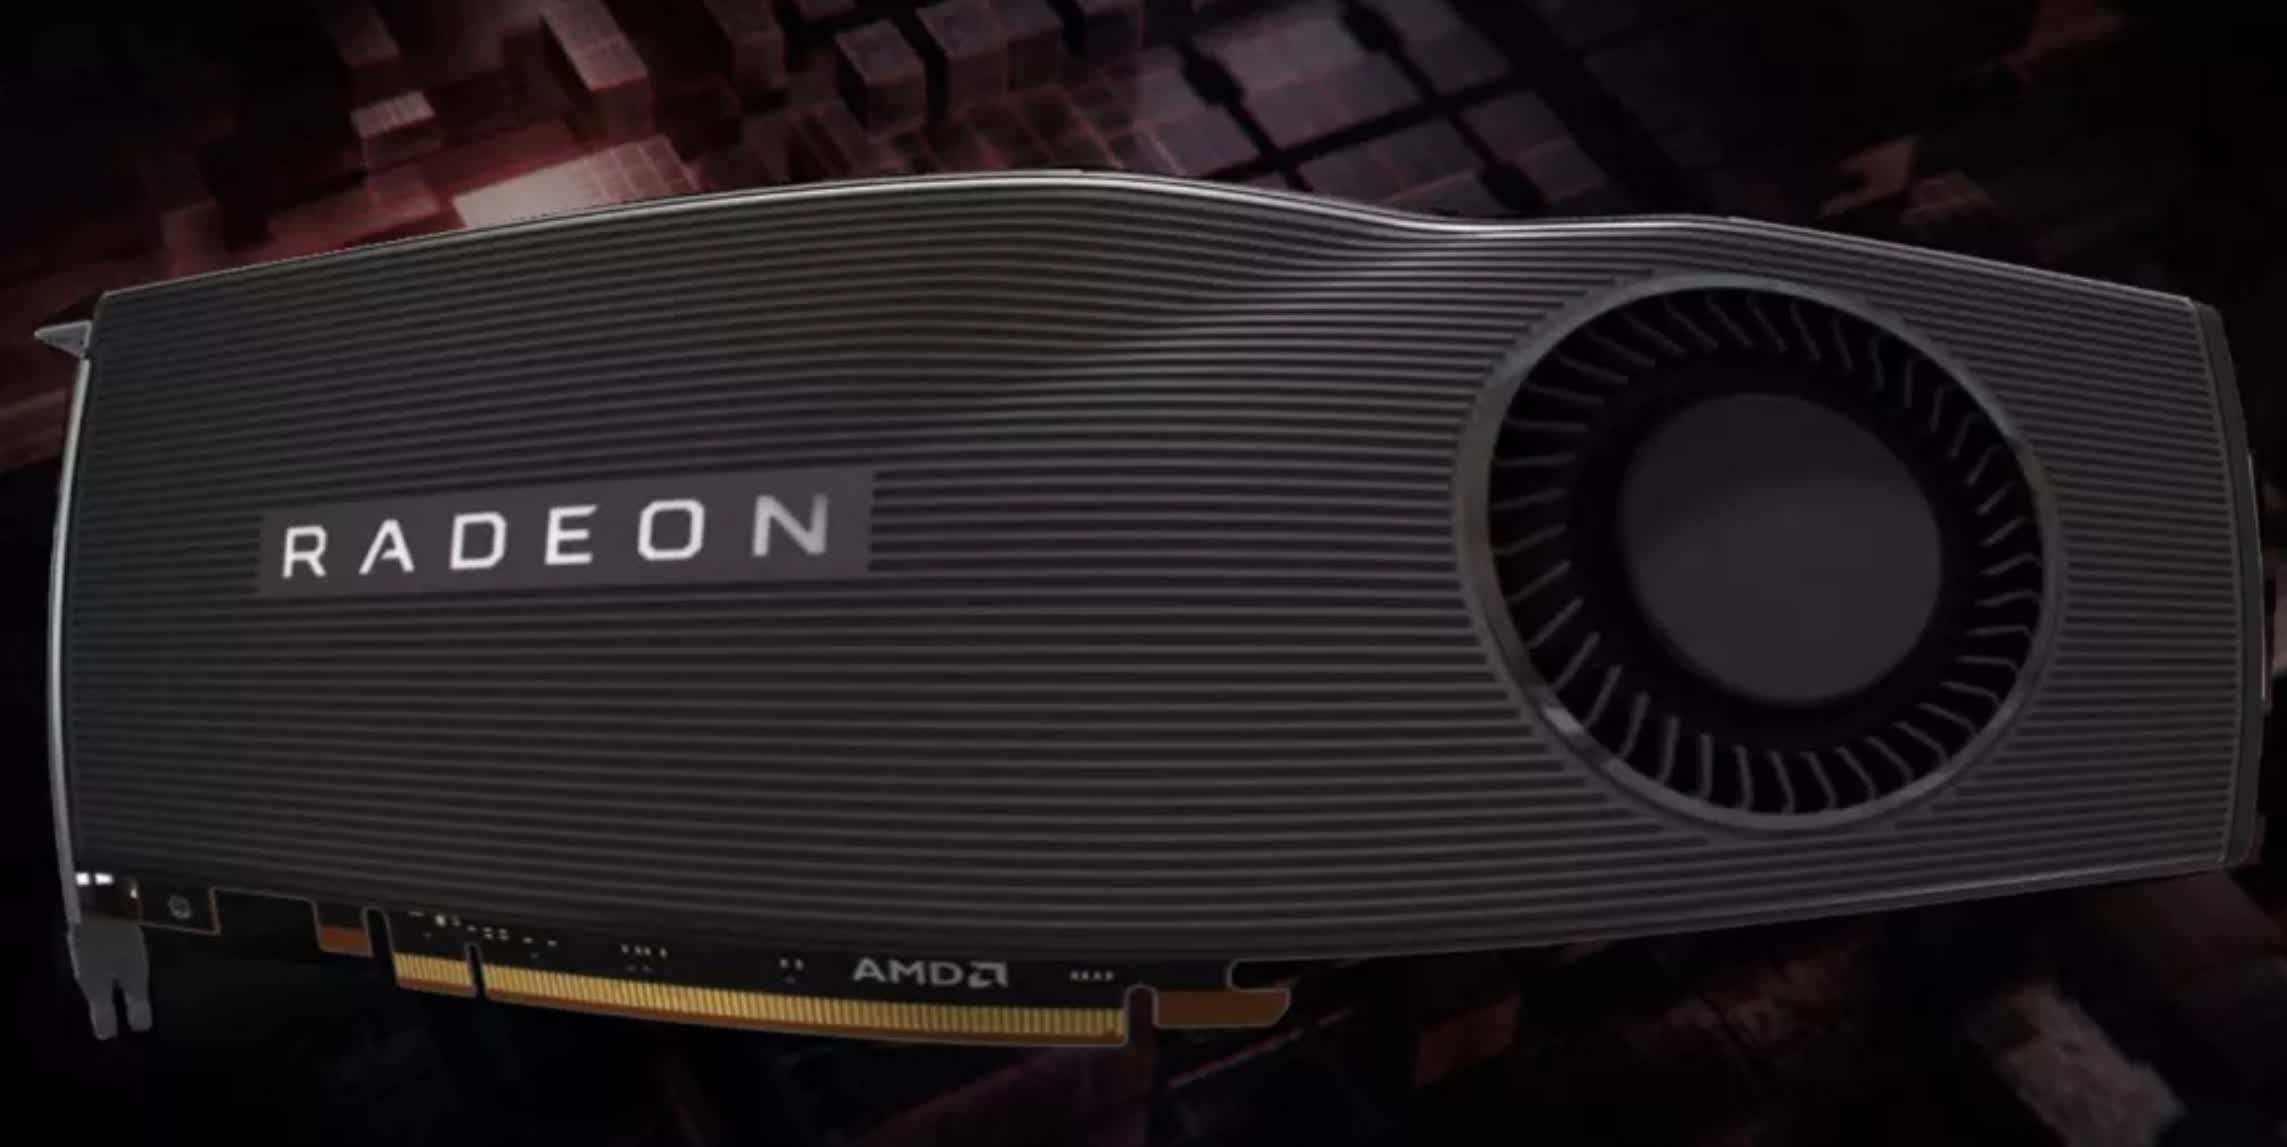 Radeon 6000 Easter egg discovered in Fortnite, 16GB card rumored to undercut RTX 3080